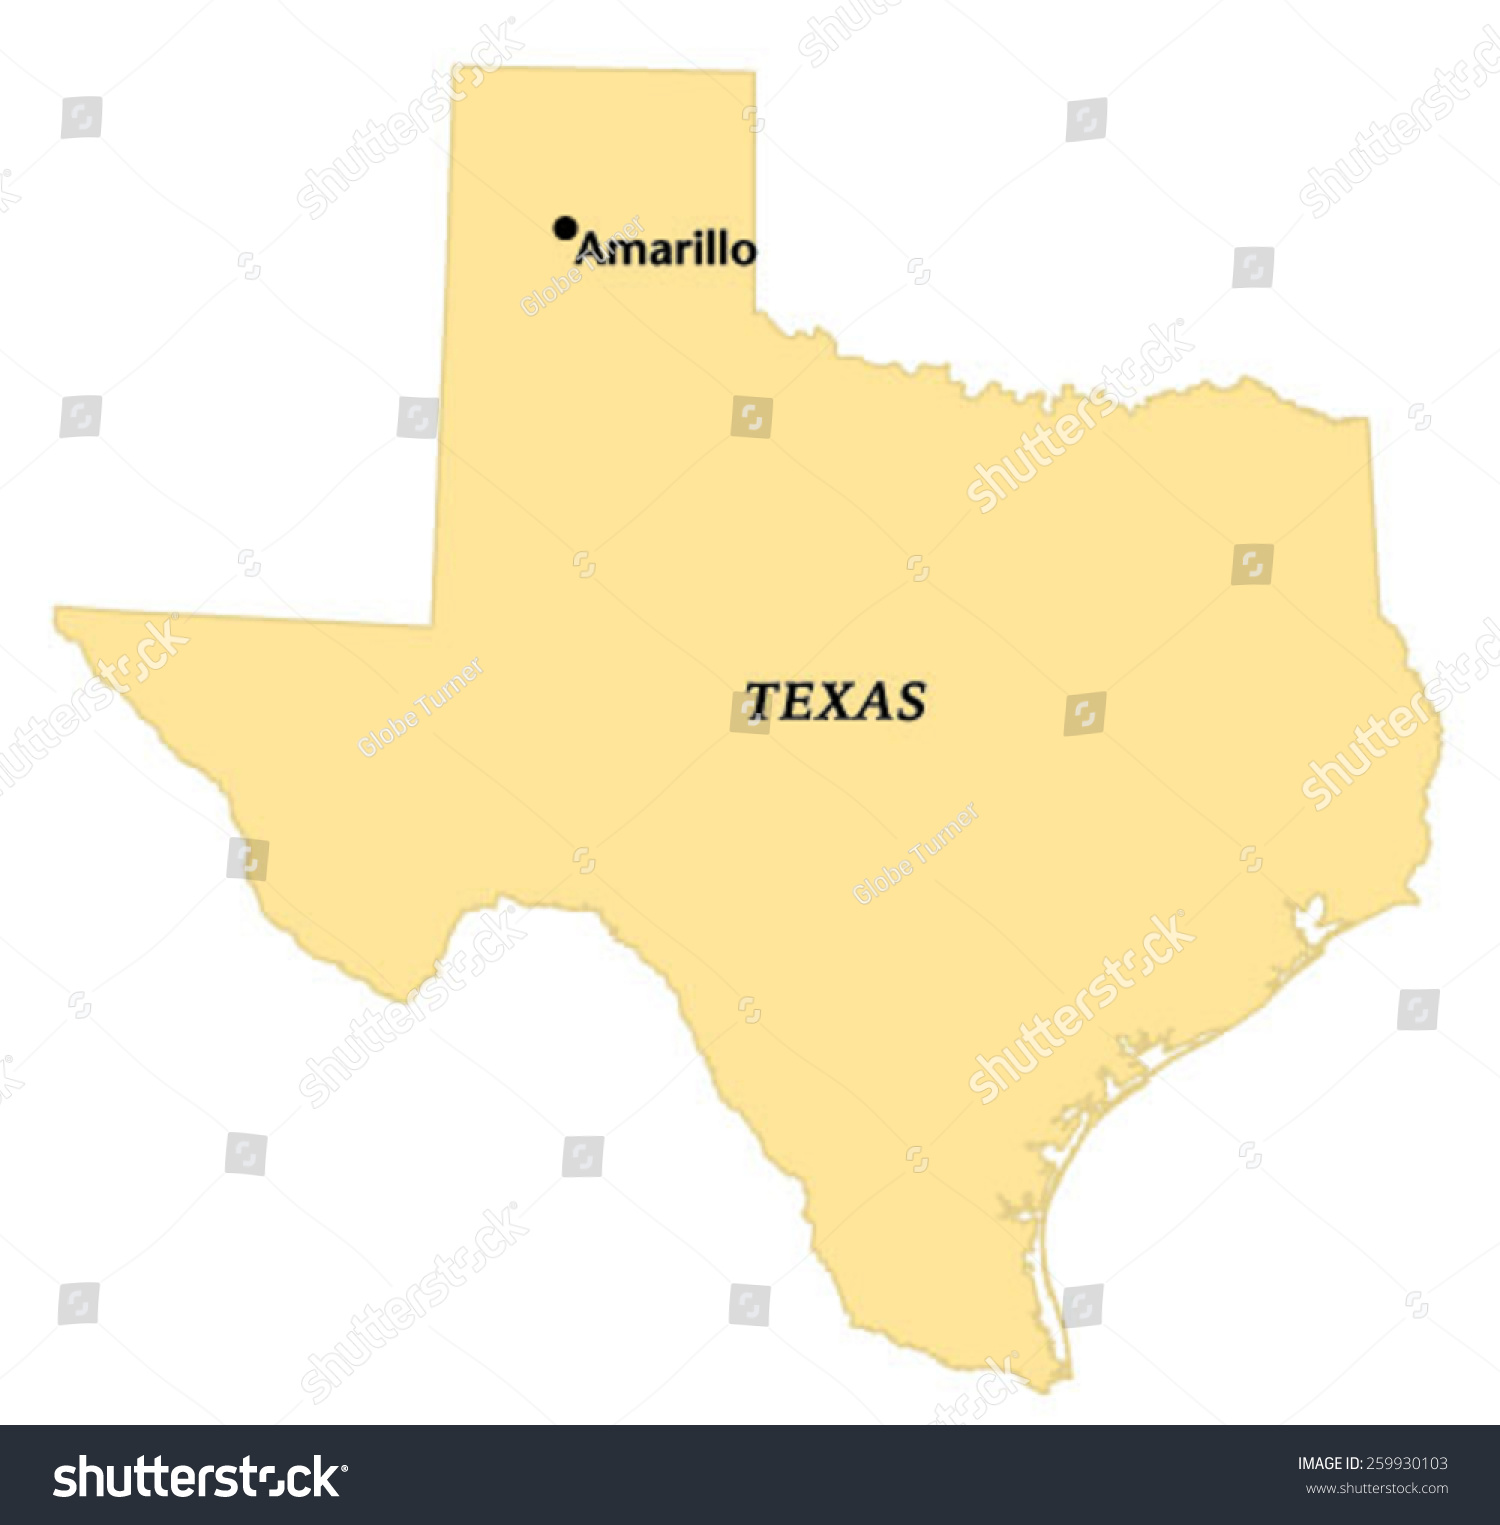 Amarillo Texas Locate Map Stock Vector Shutterstock - Map of amarillo texas